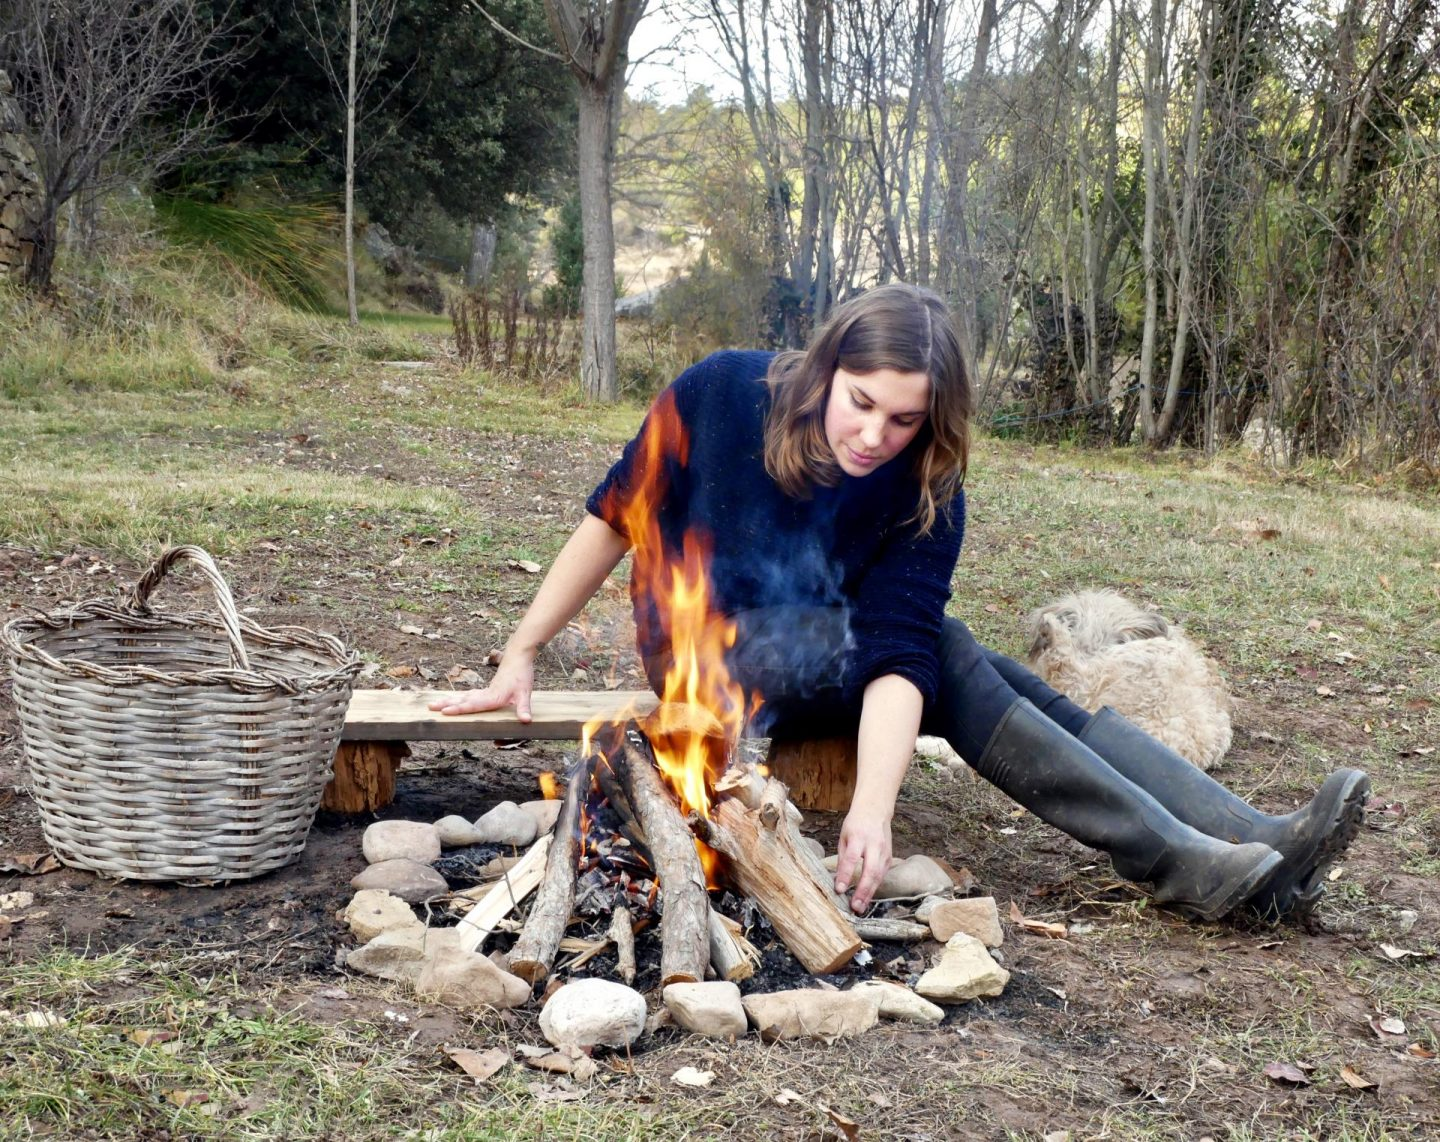 101 adventure, nature and outdoor inspired activities to do at home | The Girl Outdoors | Sian Lewis